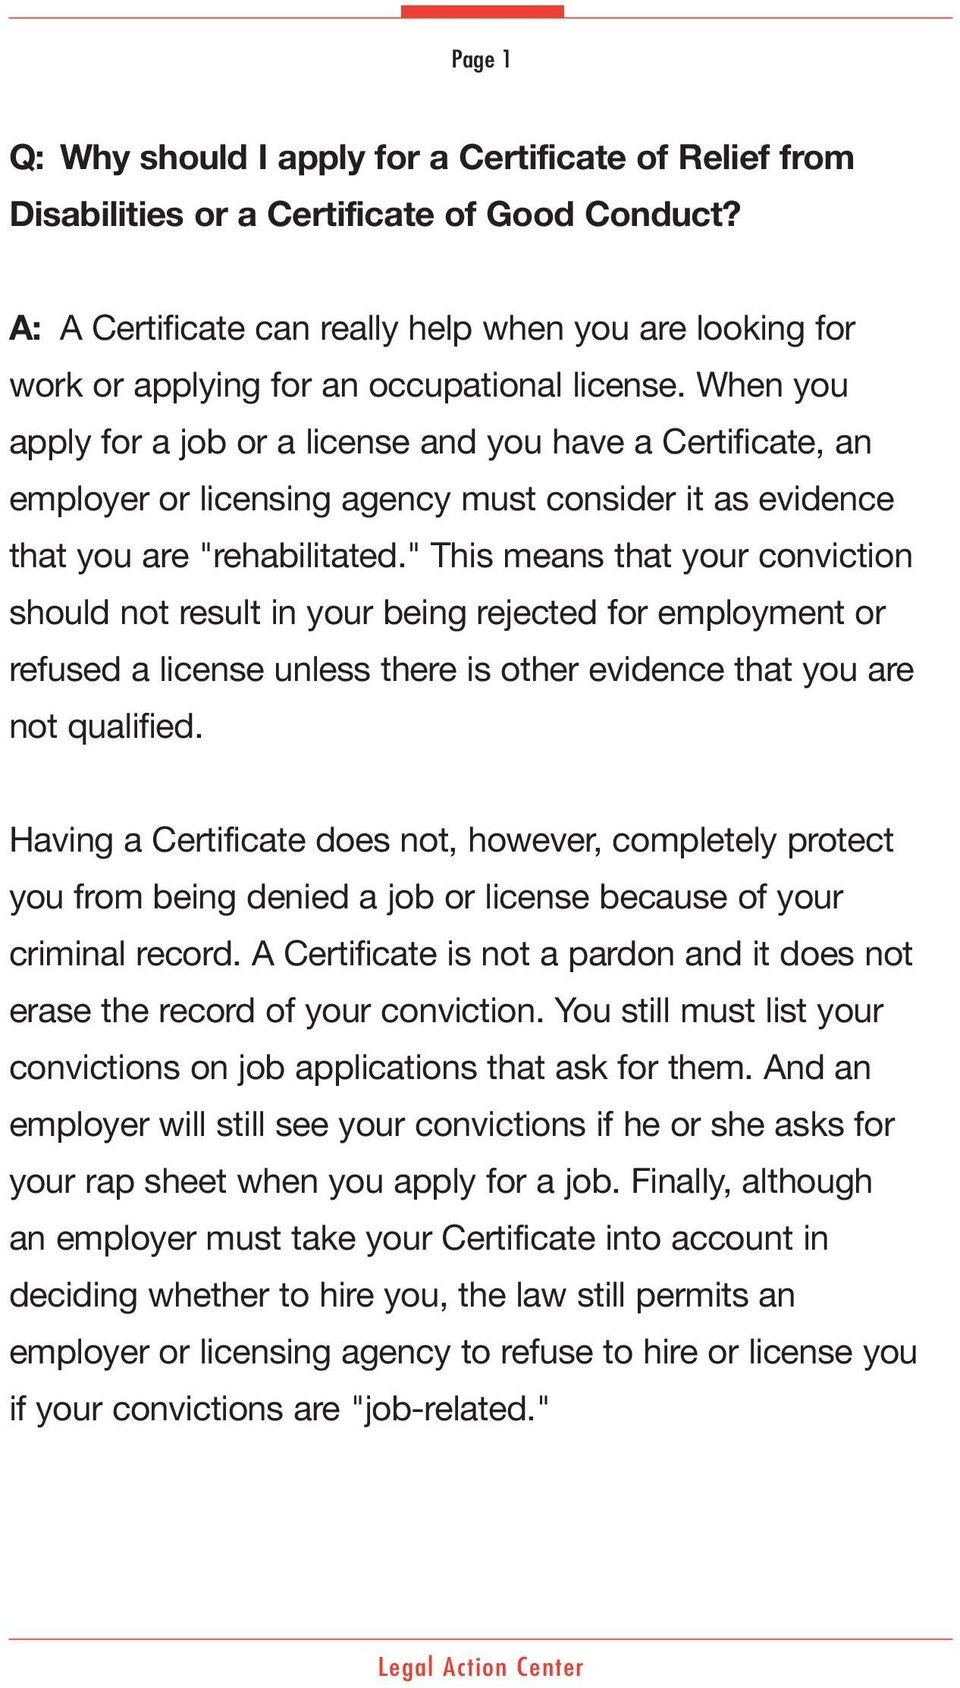 "When you apply for a job or a license and you have a Certificate, an employer or licensing agency must consider it as evidence that you are ""rehabilitated."